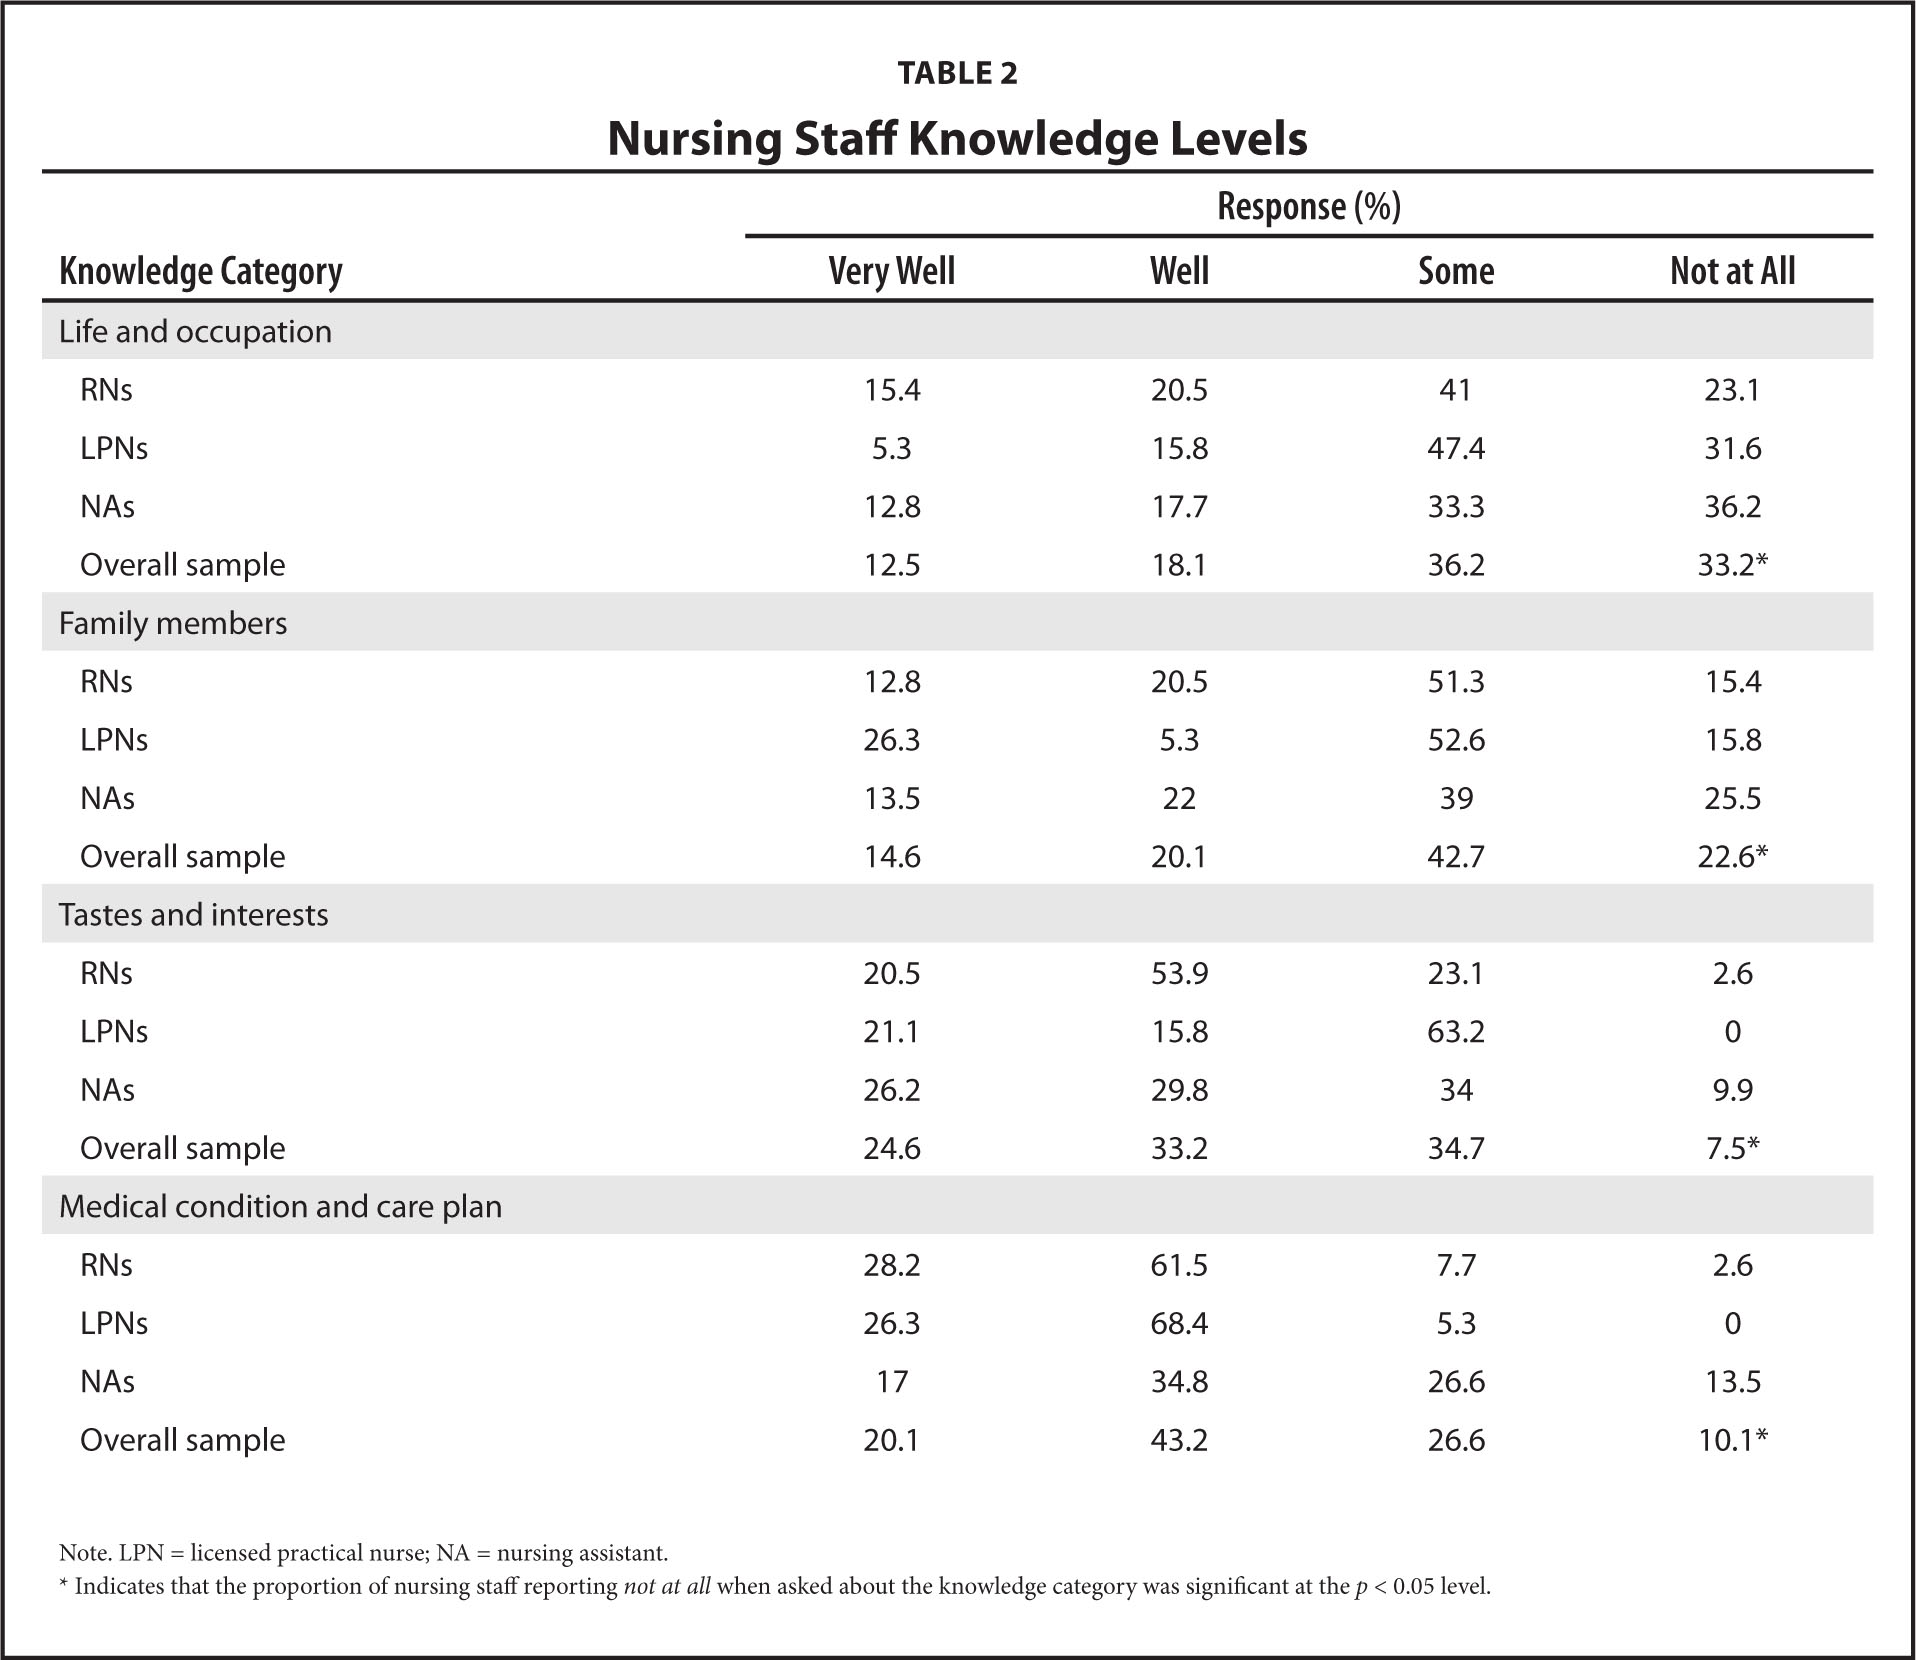 Nursing Staff Knowledge Levels